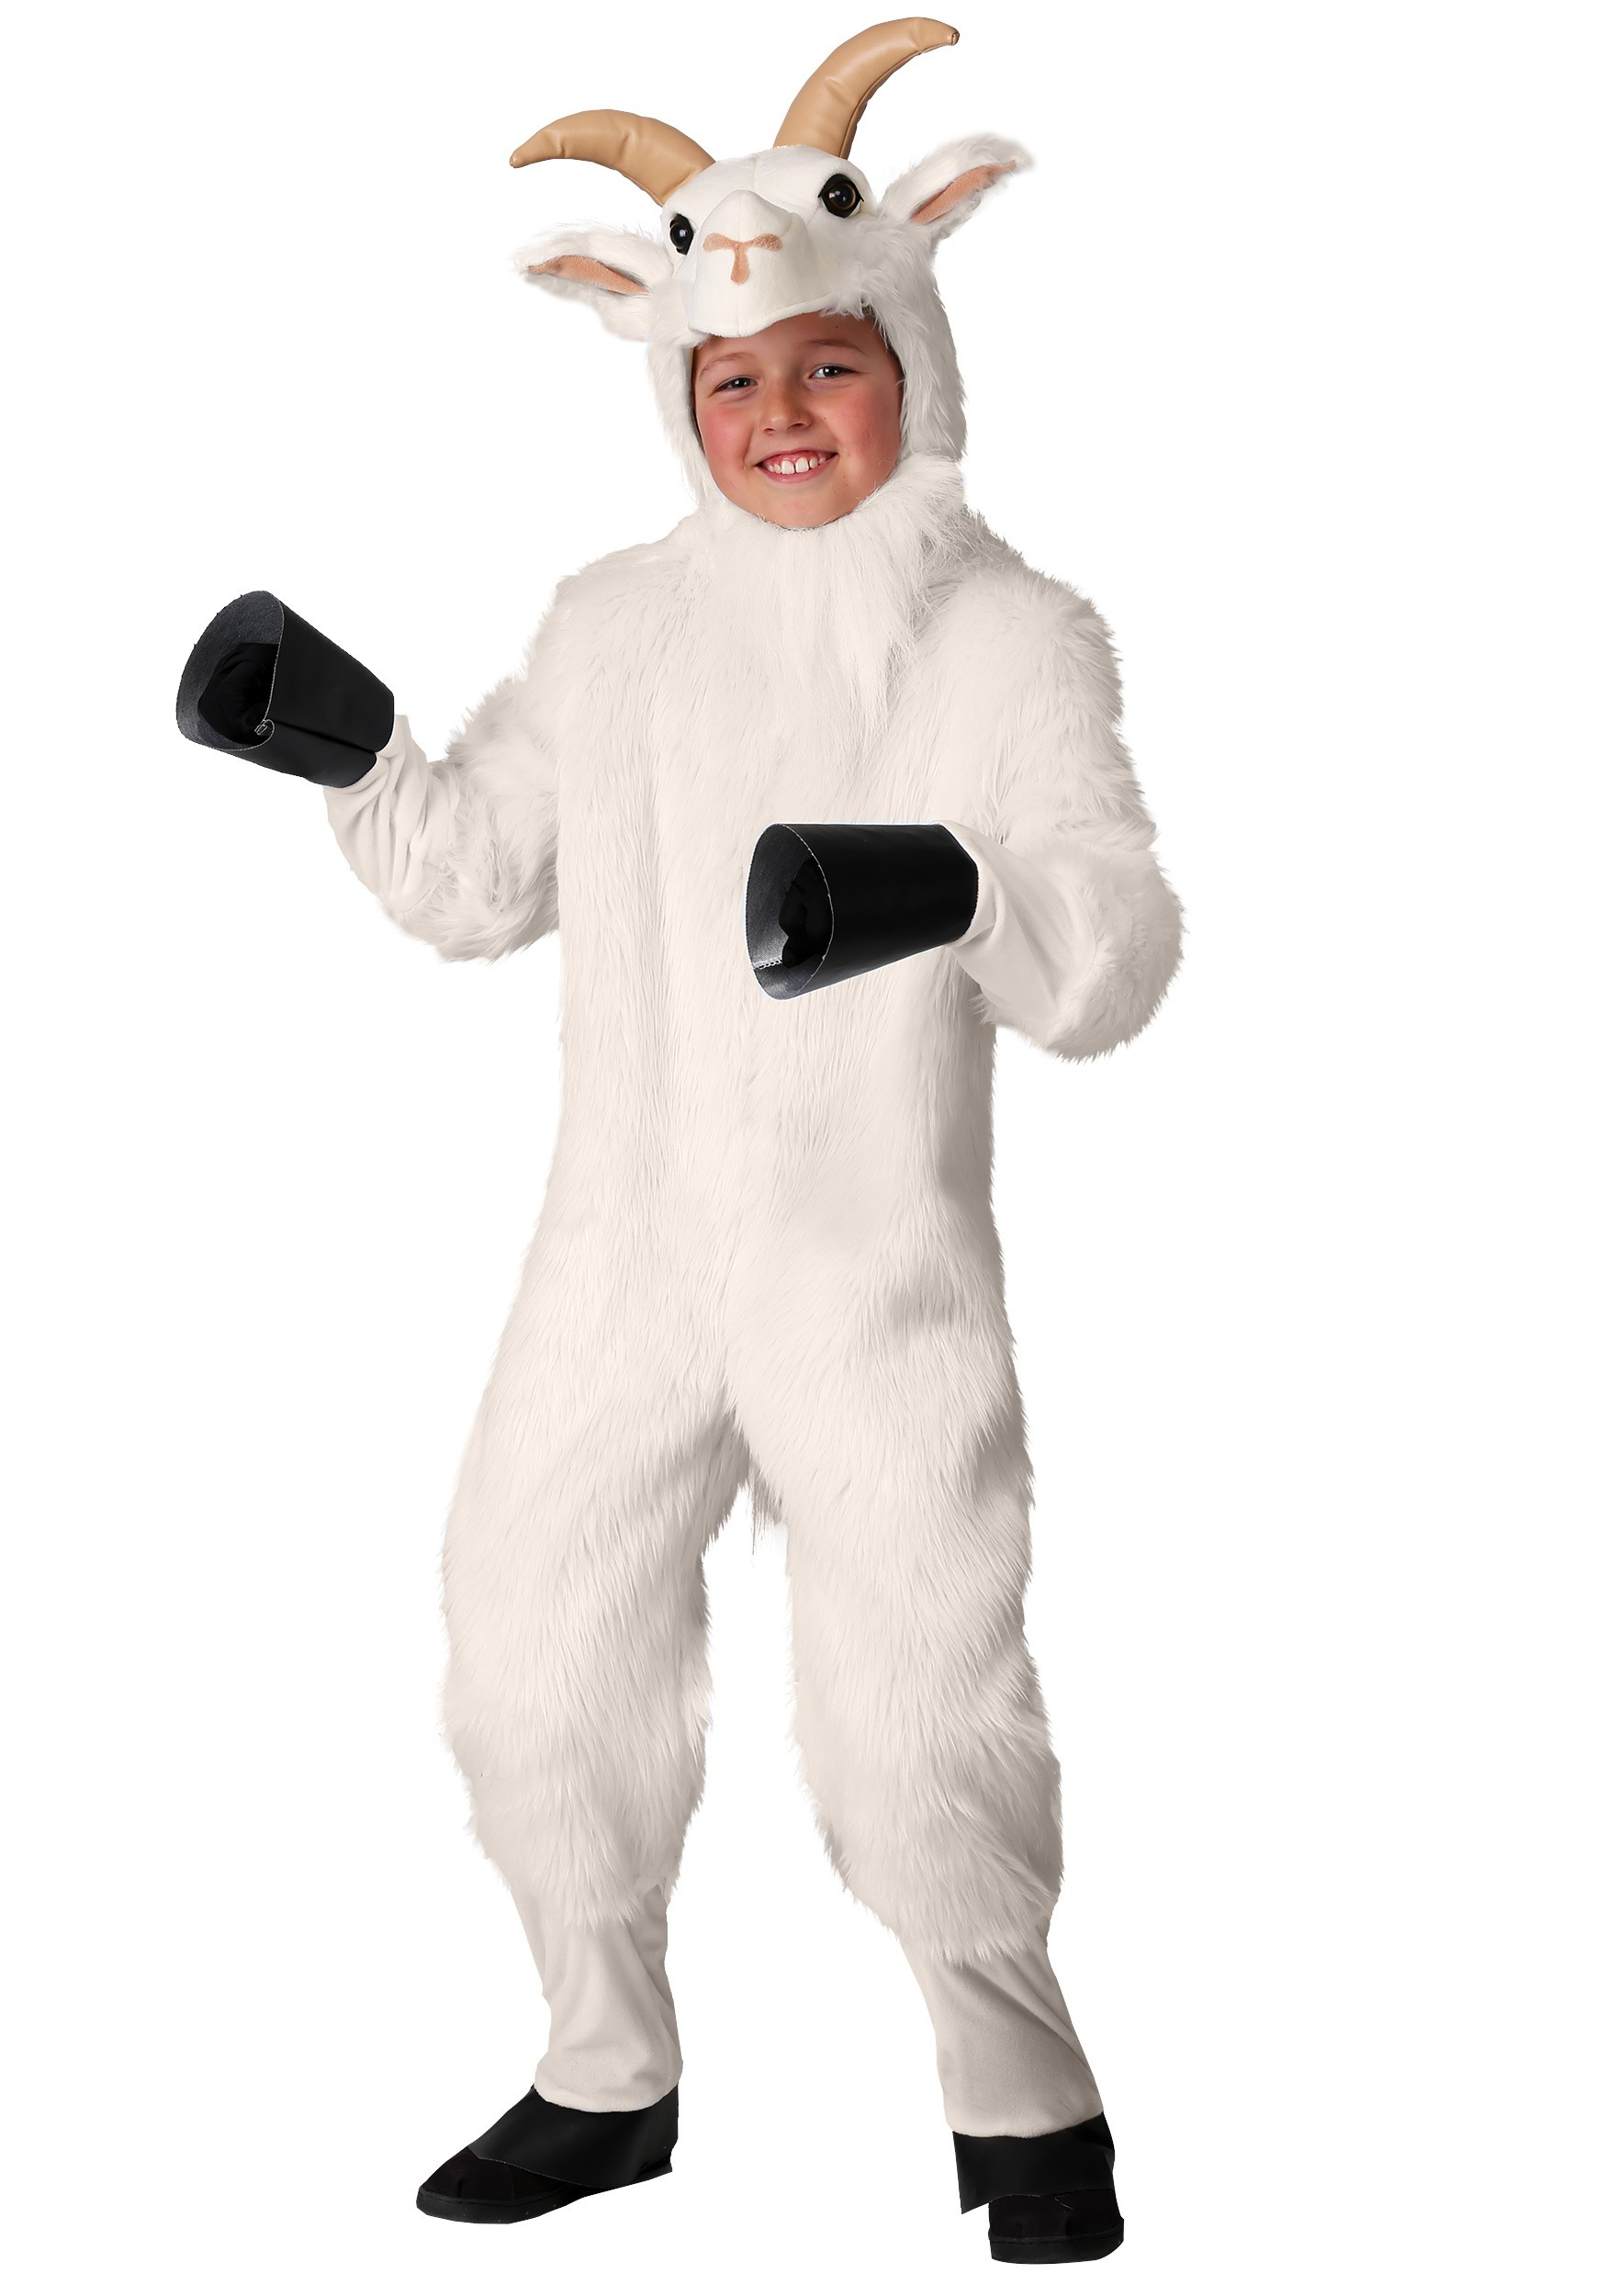 Child's Mountain Goat Costume | Exclusive | made By Us